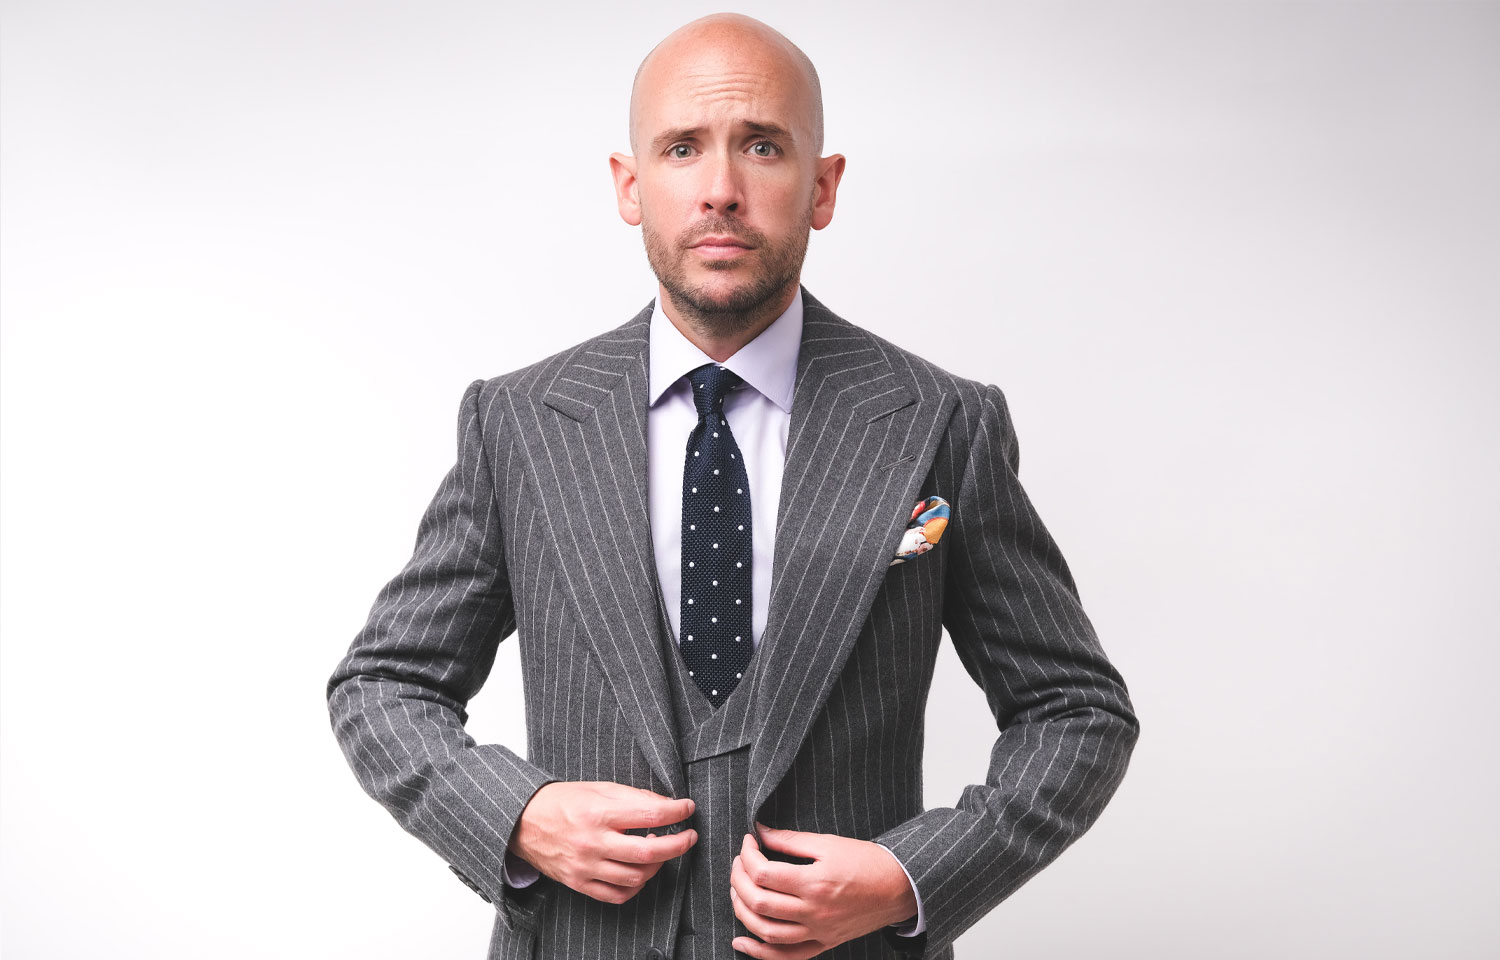 TOM ALLEN TO HOST NEW SHOW QUIZNESS ON CHANNEL 4